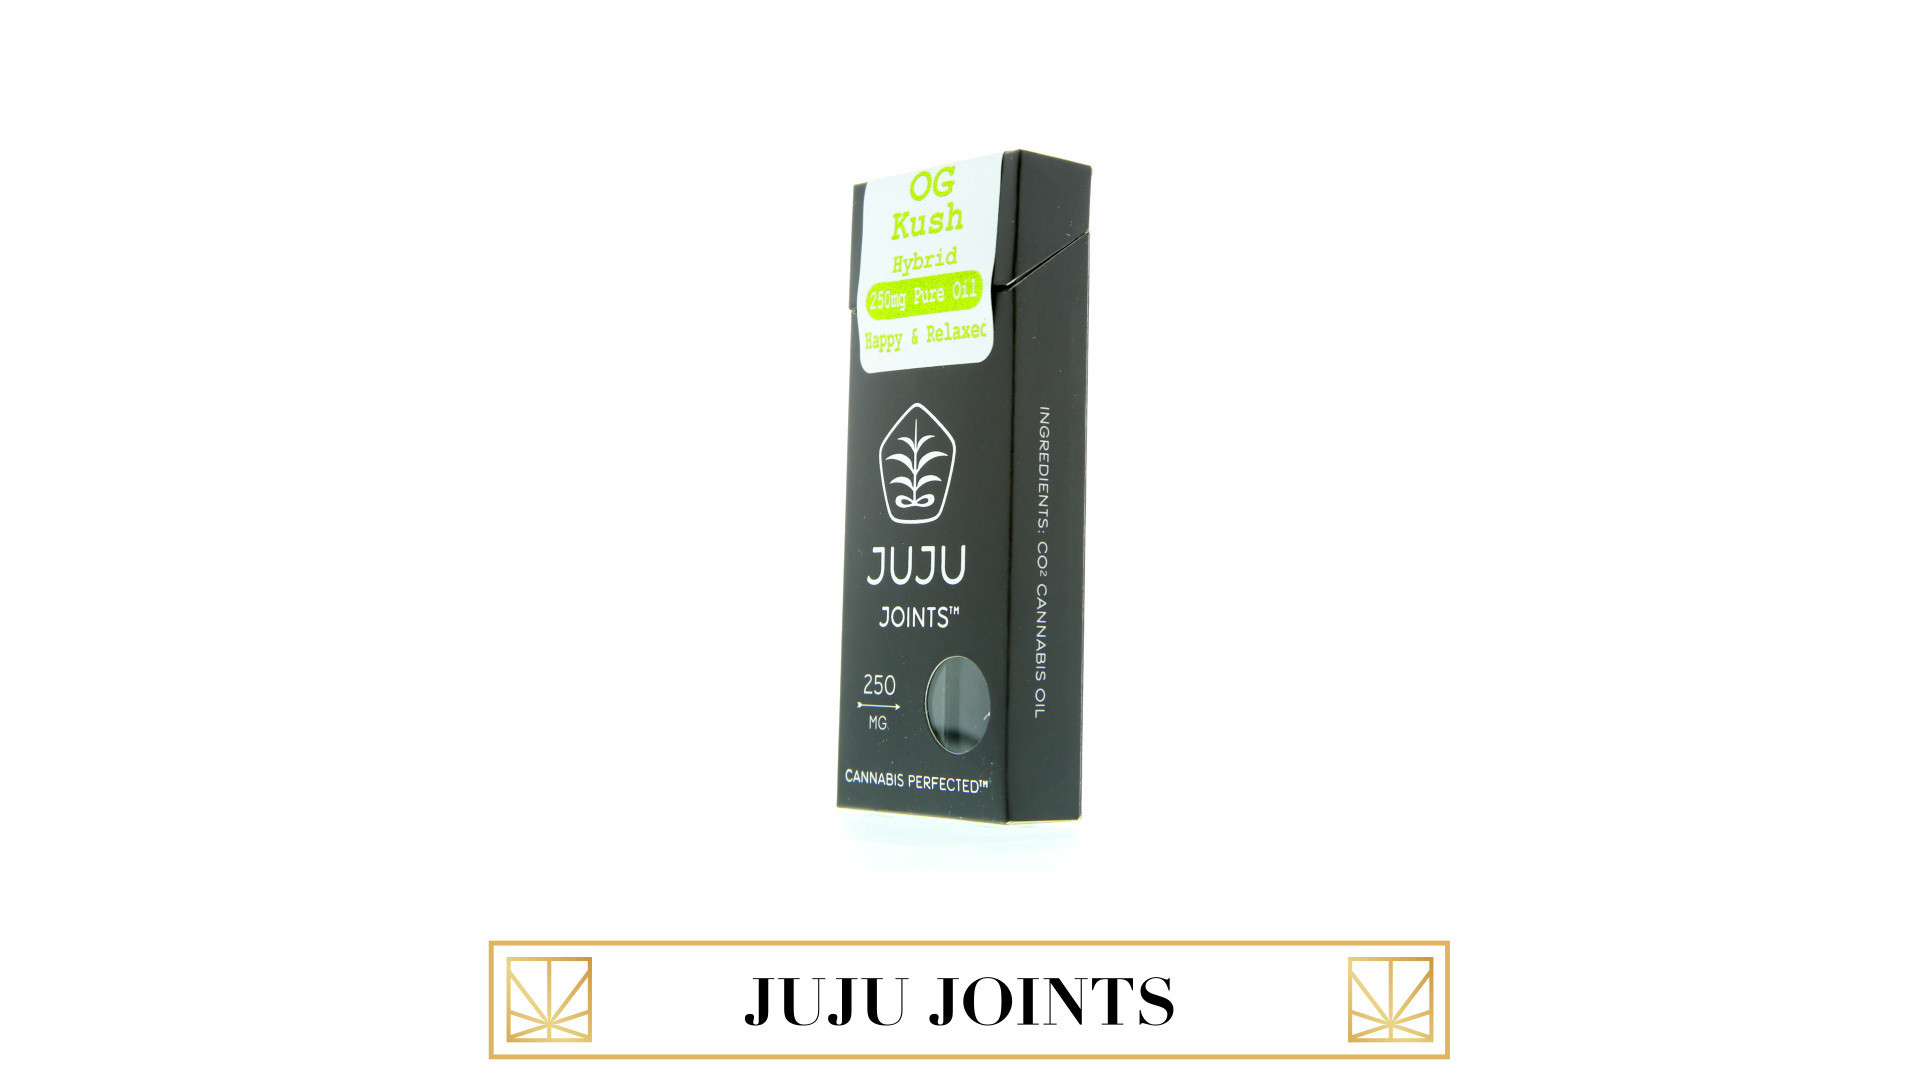 <p>Loaded, charged and ready to enjoy, JUJU Jointsare designed specifically for oil and produce low odor.Strain specific CO2concentrated THC oil.</p>